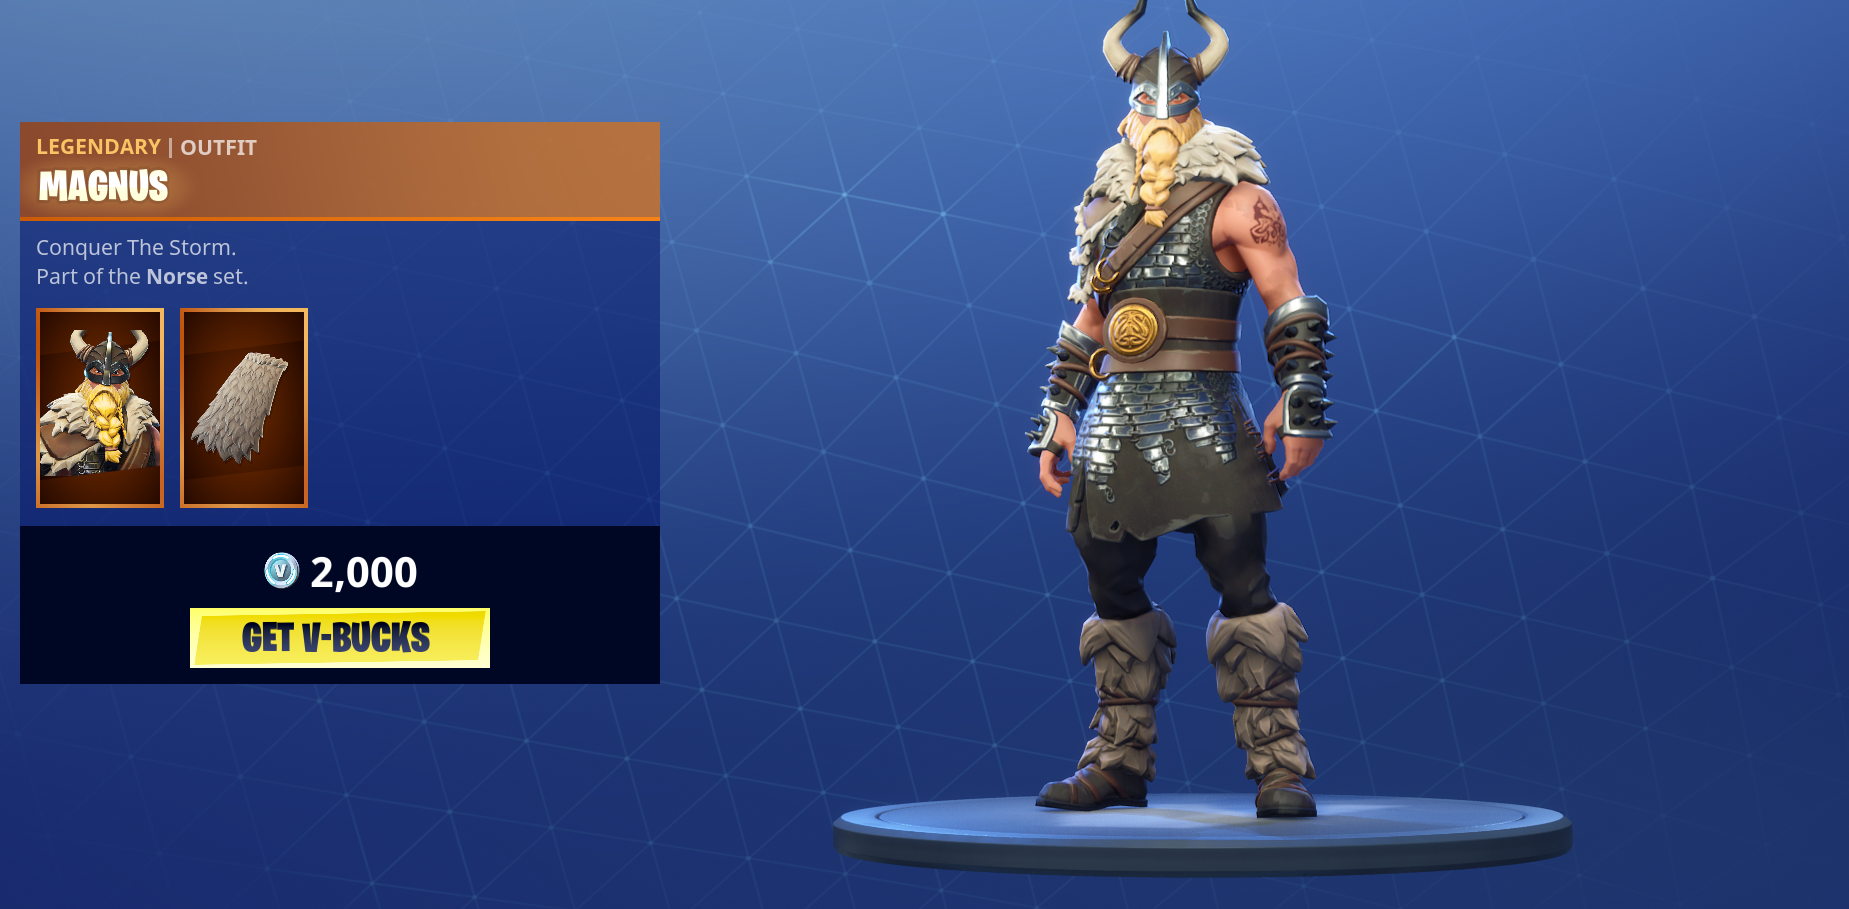 Fortnite Cape magnus outfit arrives in fortnite